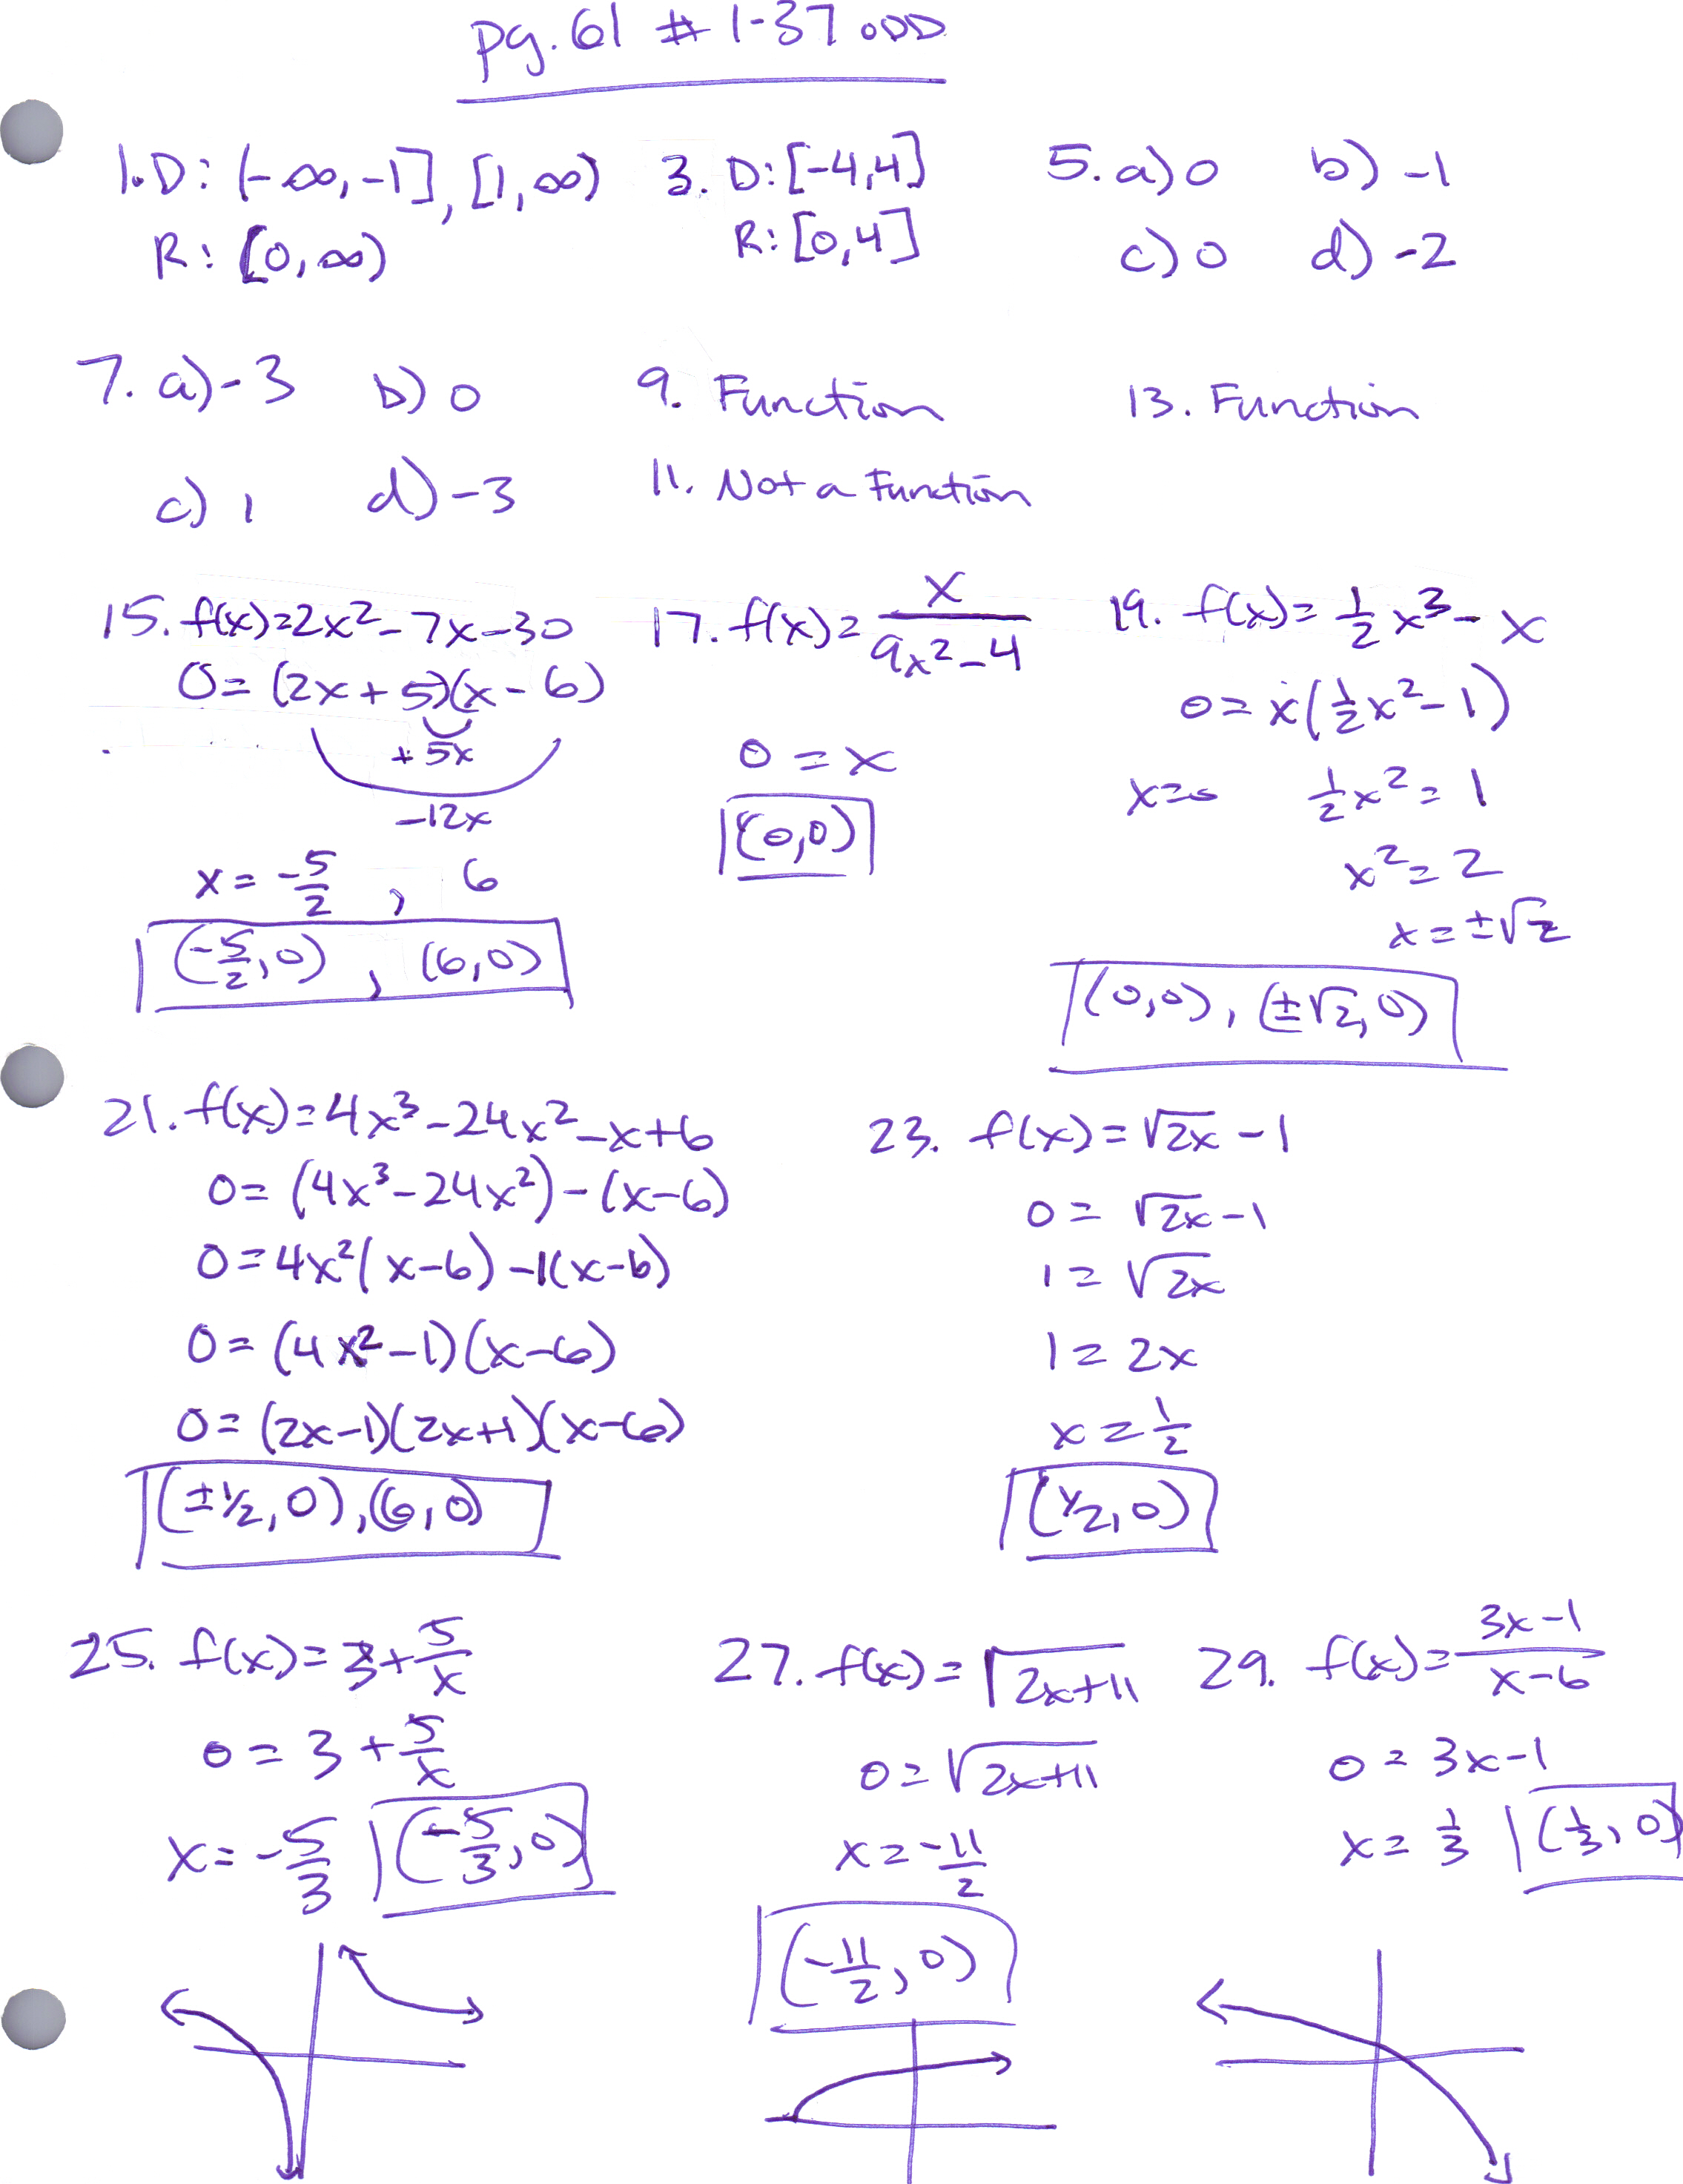 Precalculus With Trigonometry Homework Help